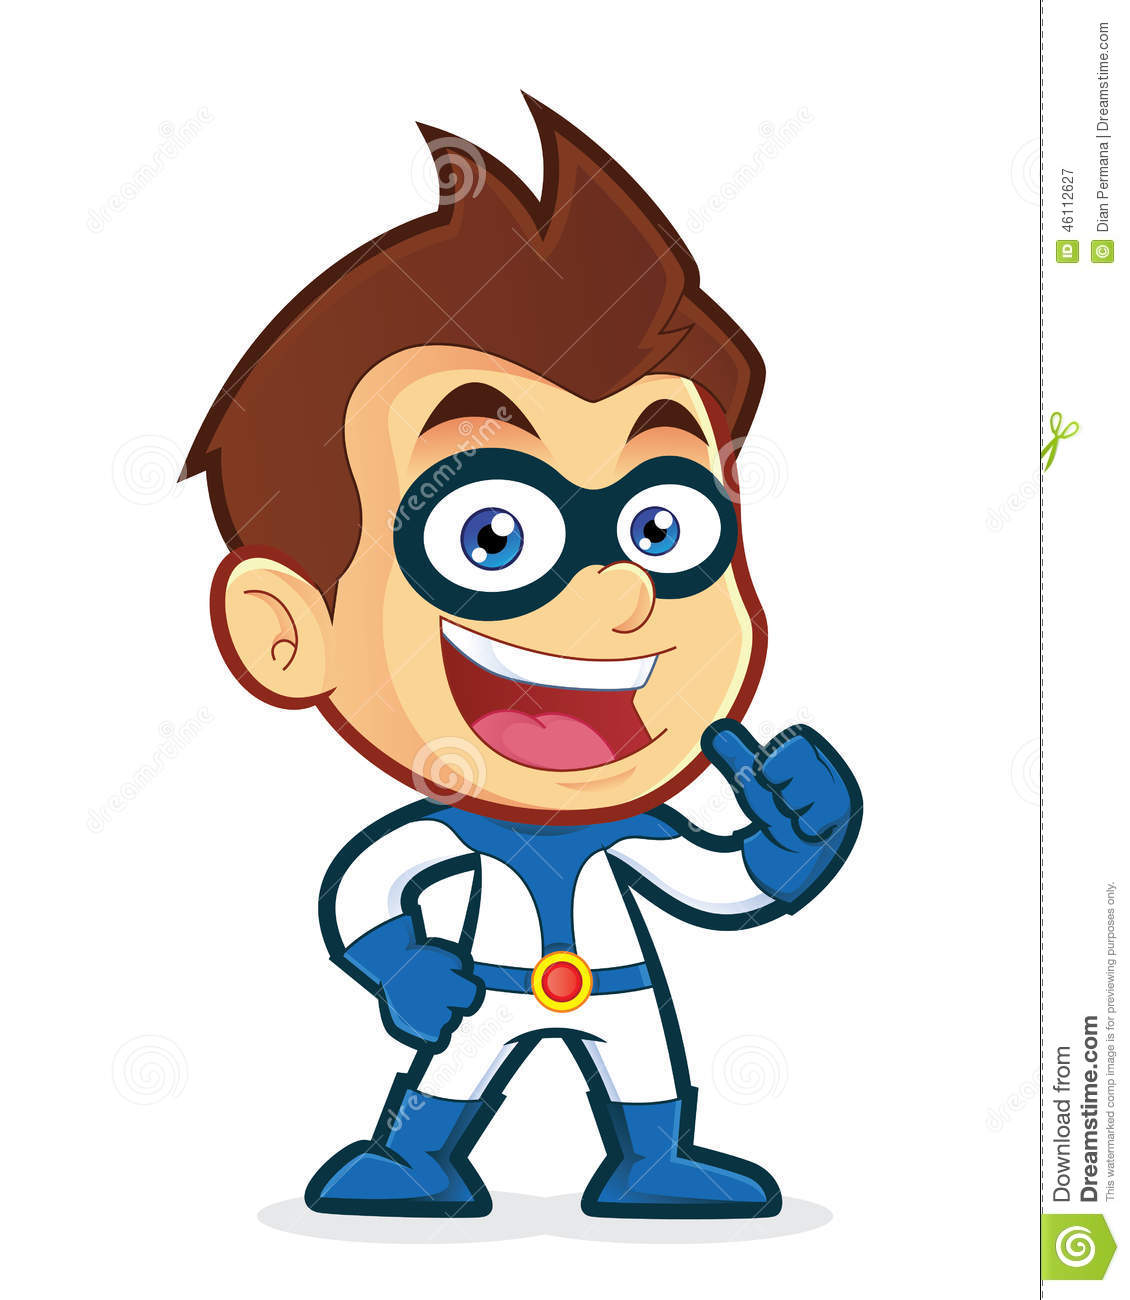 Boy thumbs up clipart image royalty free library Superhero Giving Thumbs Up Stock Vector - Image: 46112627 image royalty free library